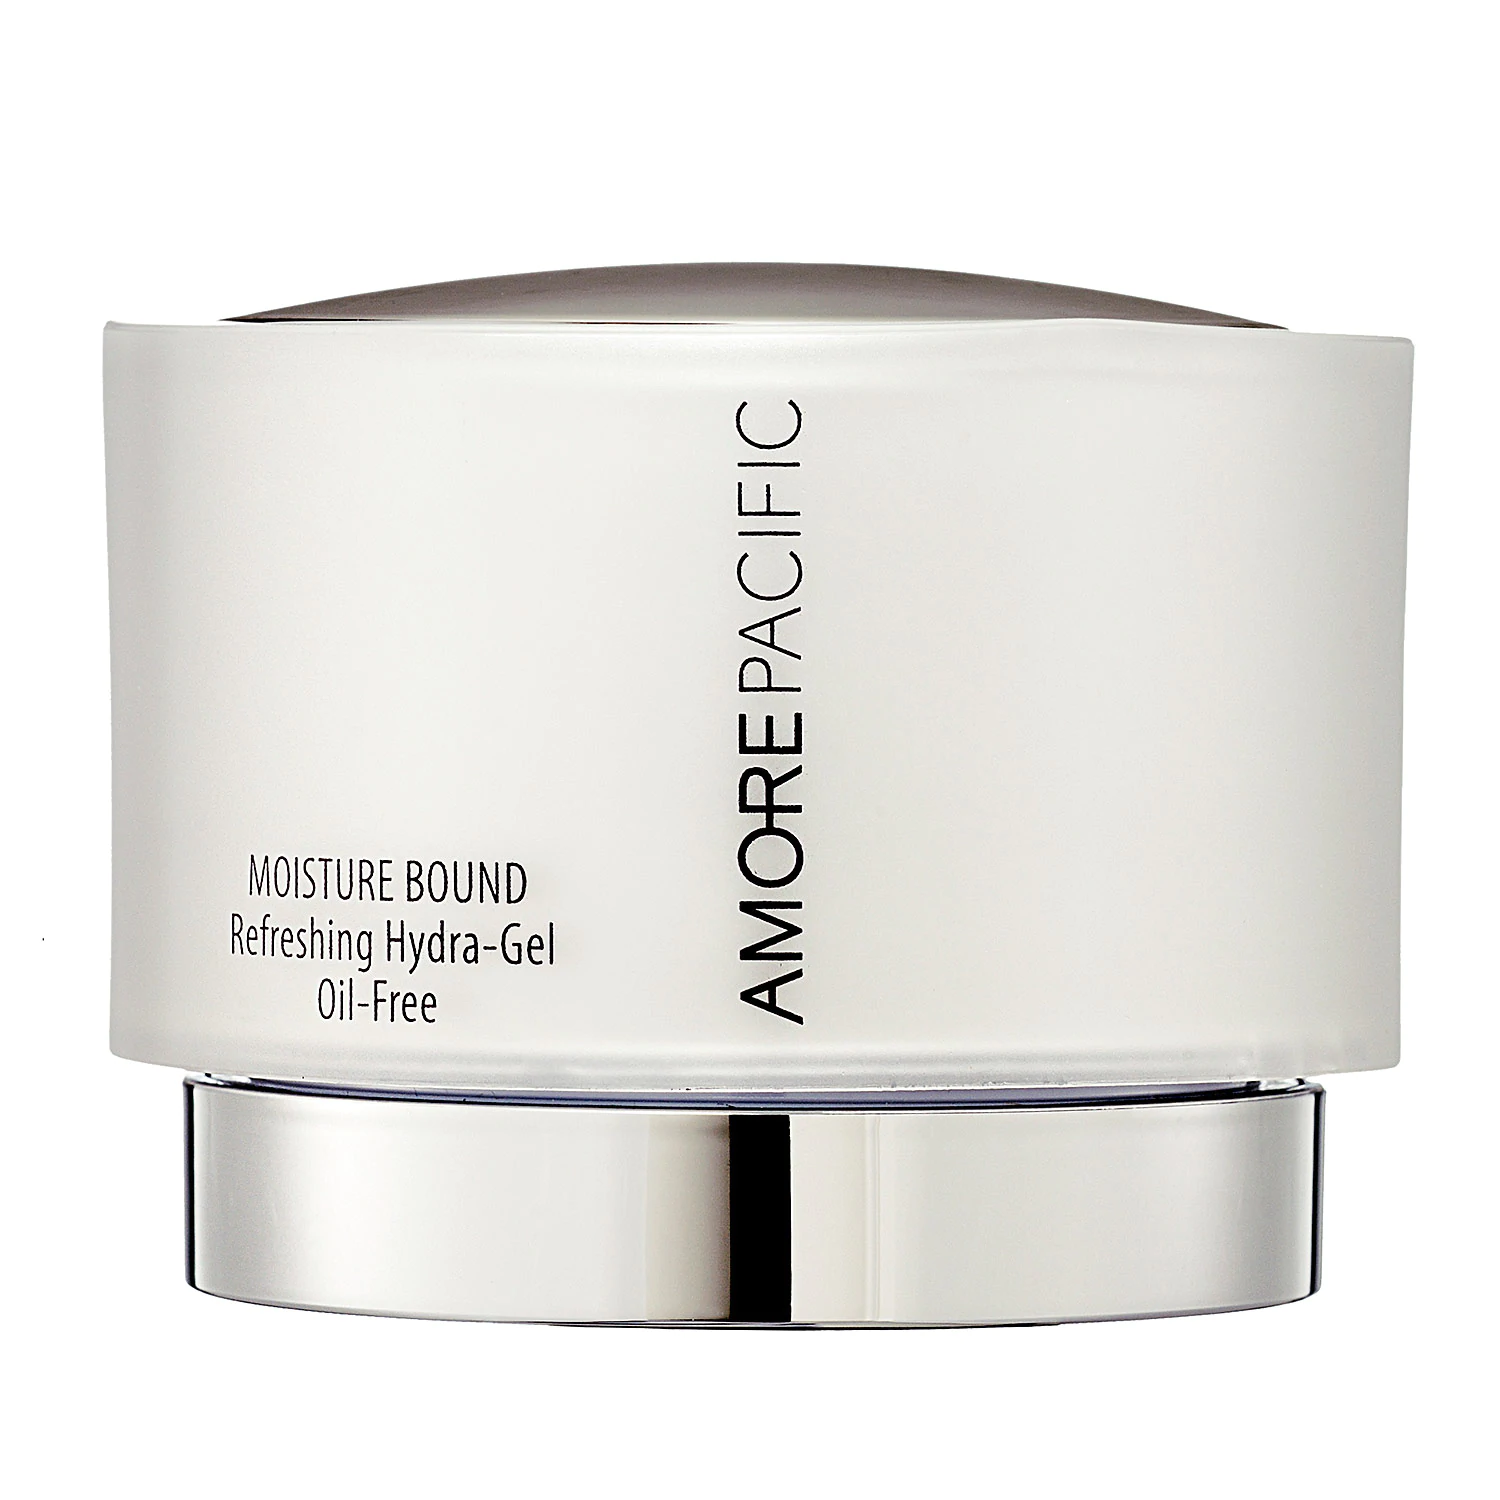 AMOREPACIFIC MOISTURE BOUND Refreshing Hydra-Gel Oil-Free